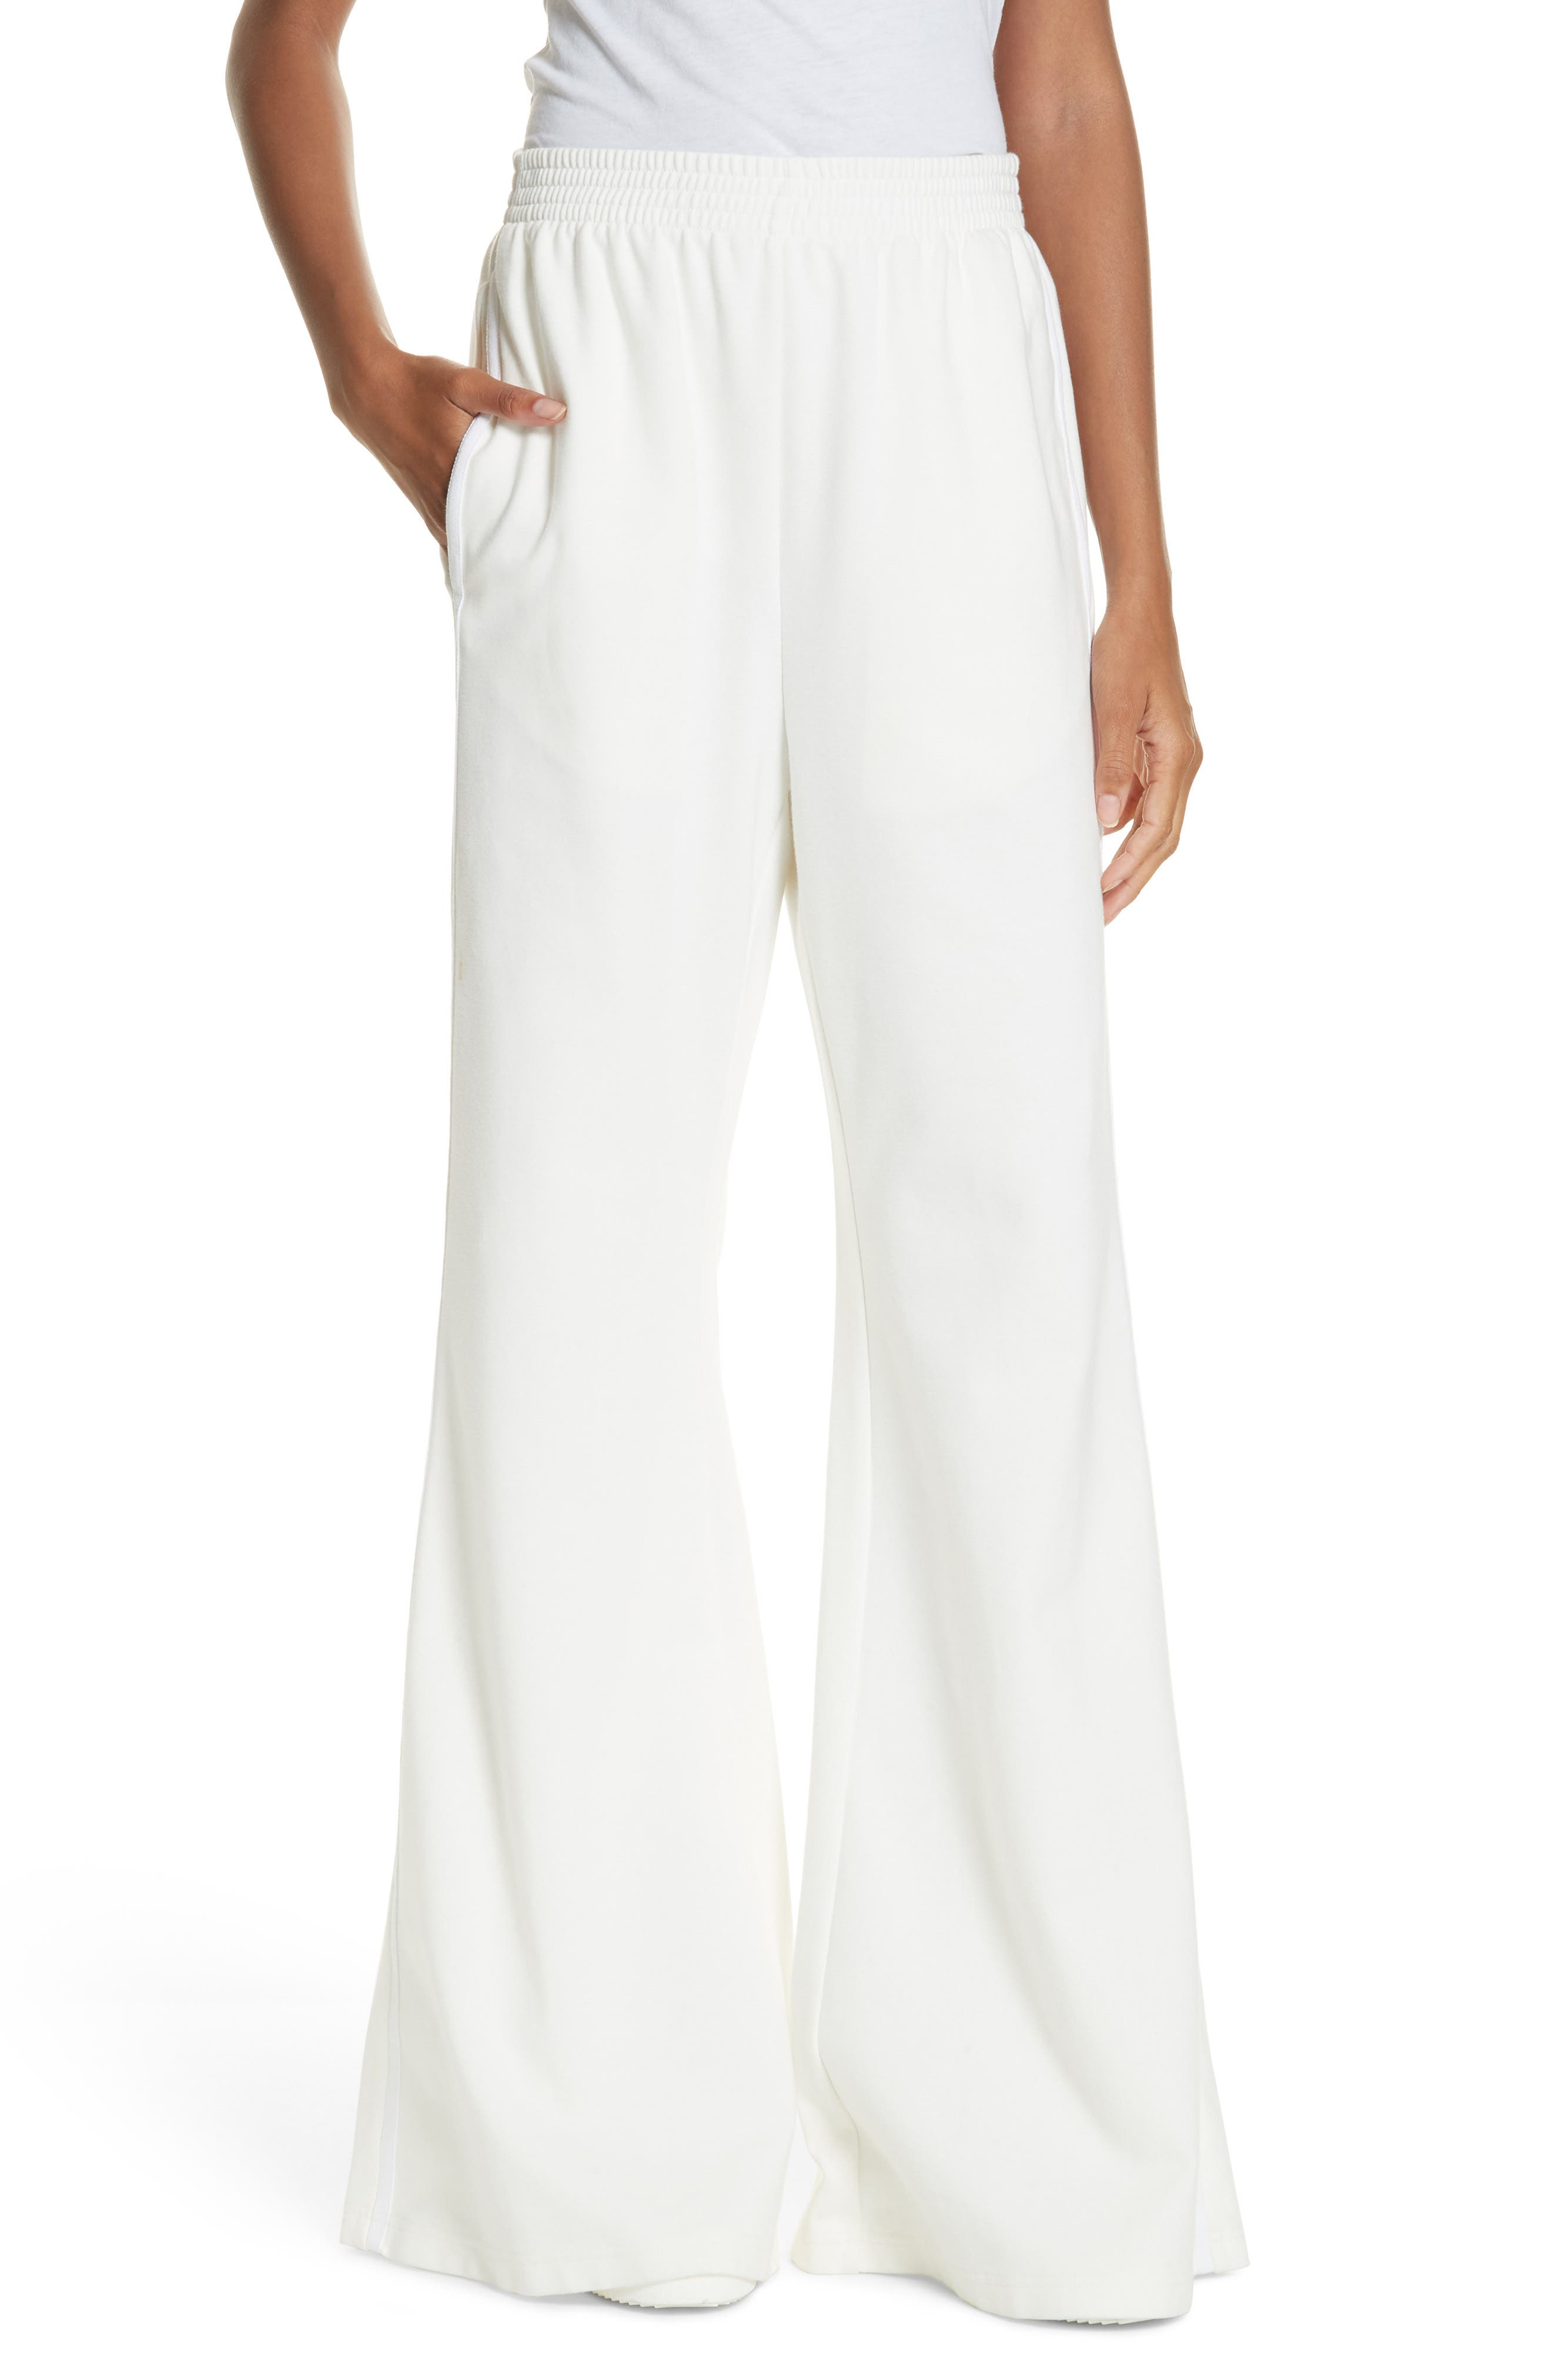 Mm6 Maison Margiela Flare Track Pants, White